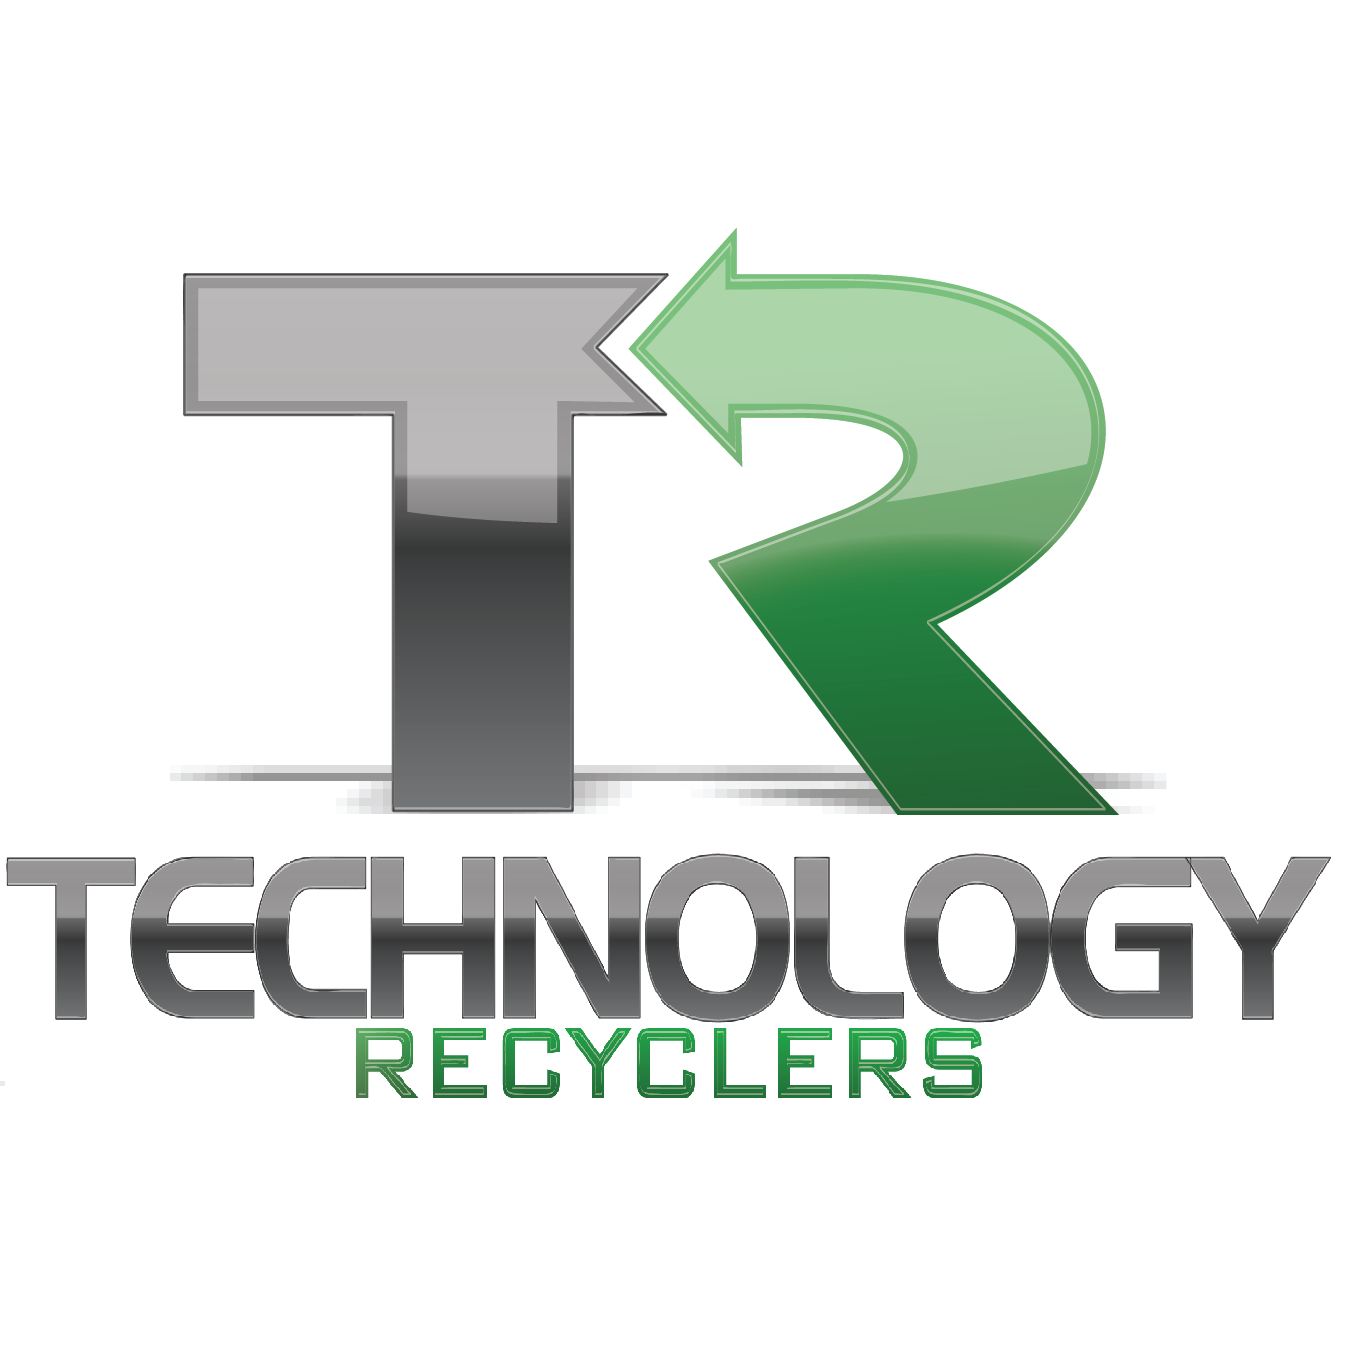 Technology Recyclers